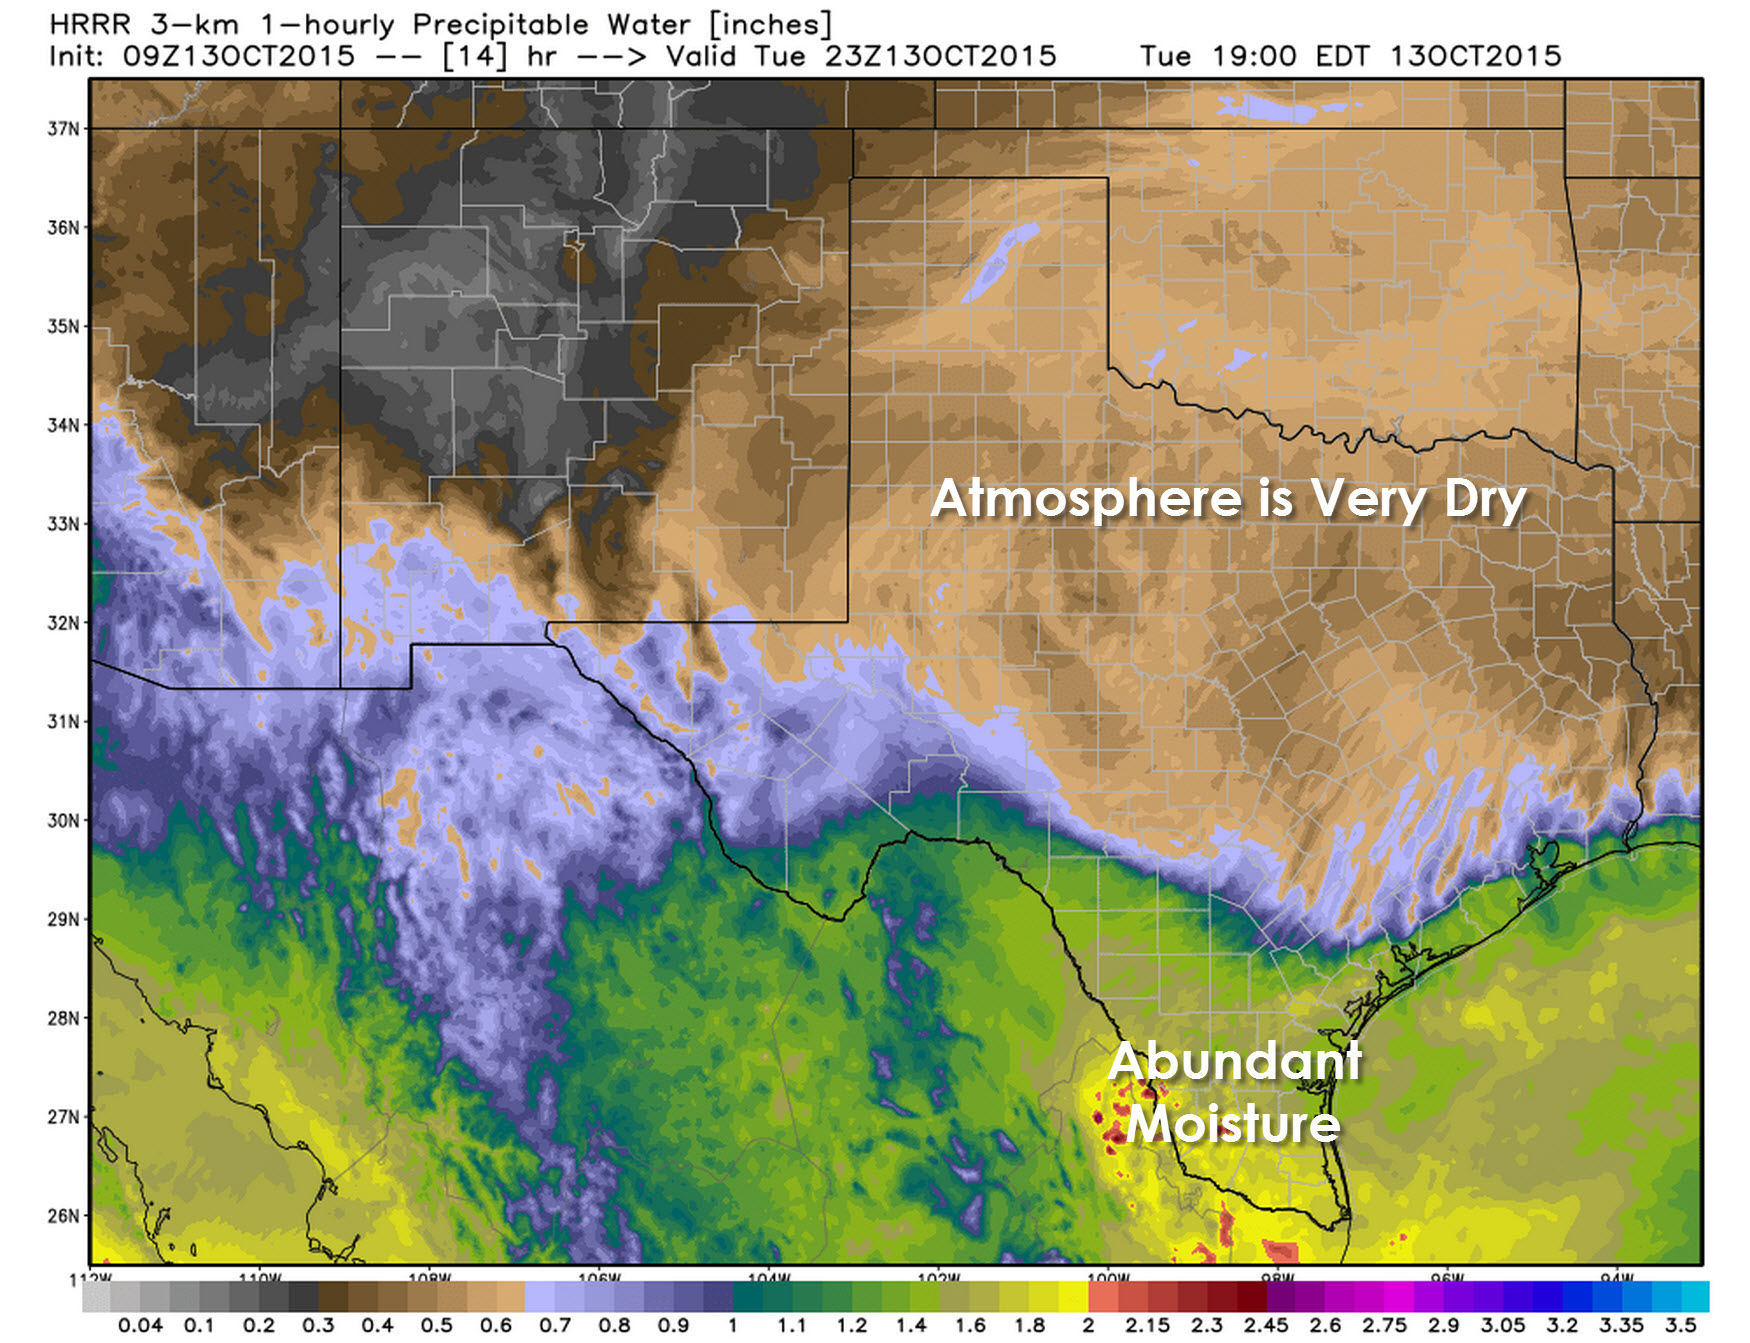 Forecast precipitable water values by late Tuesday afternoon. The cool front is easily identifiable across South Texas.